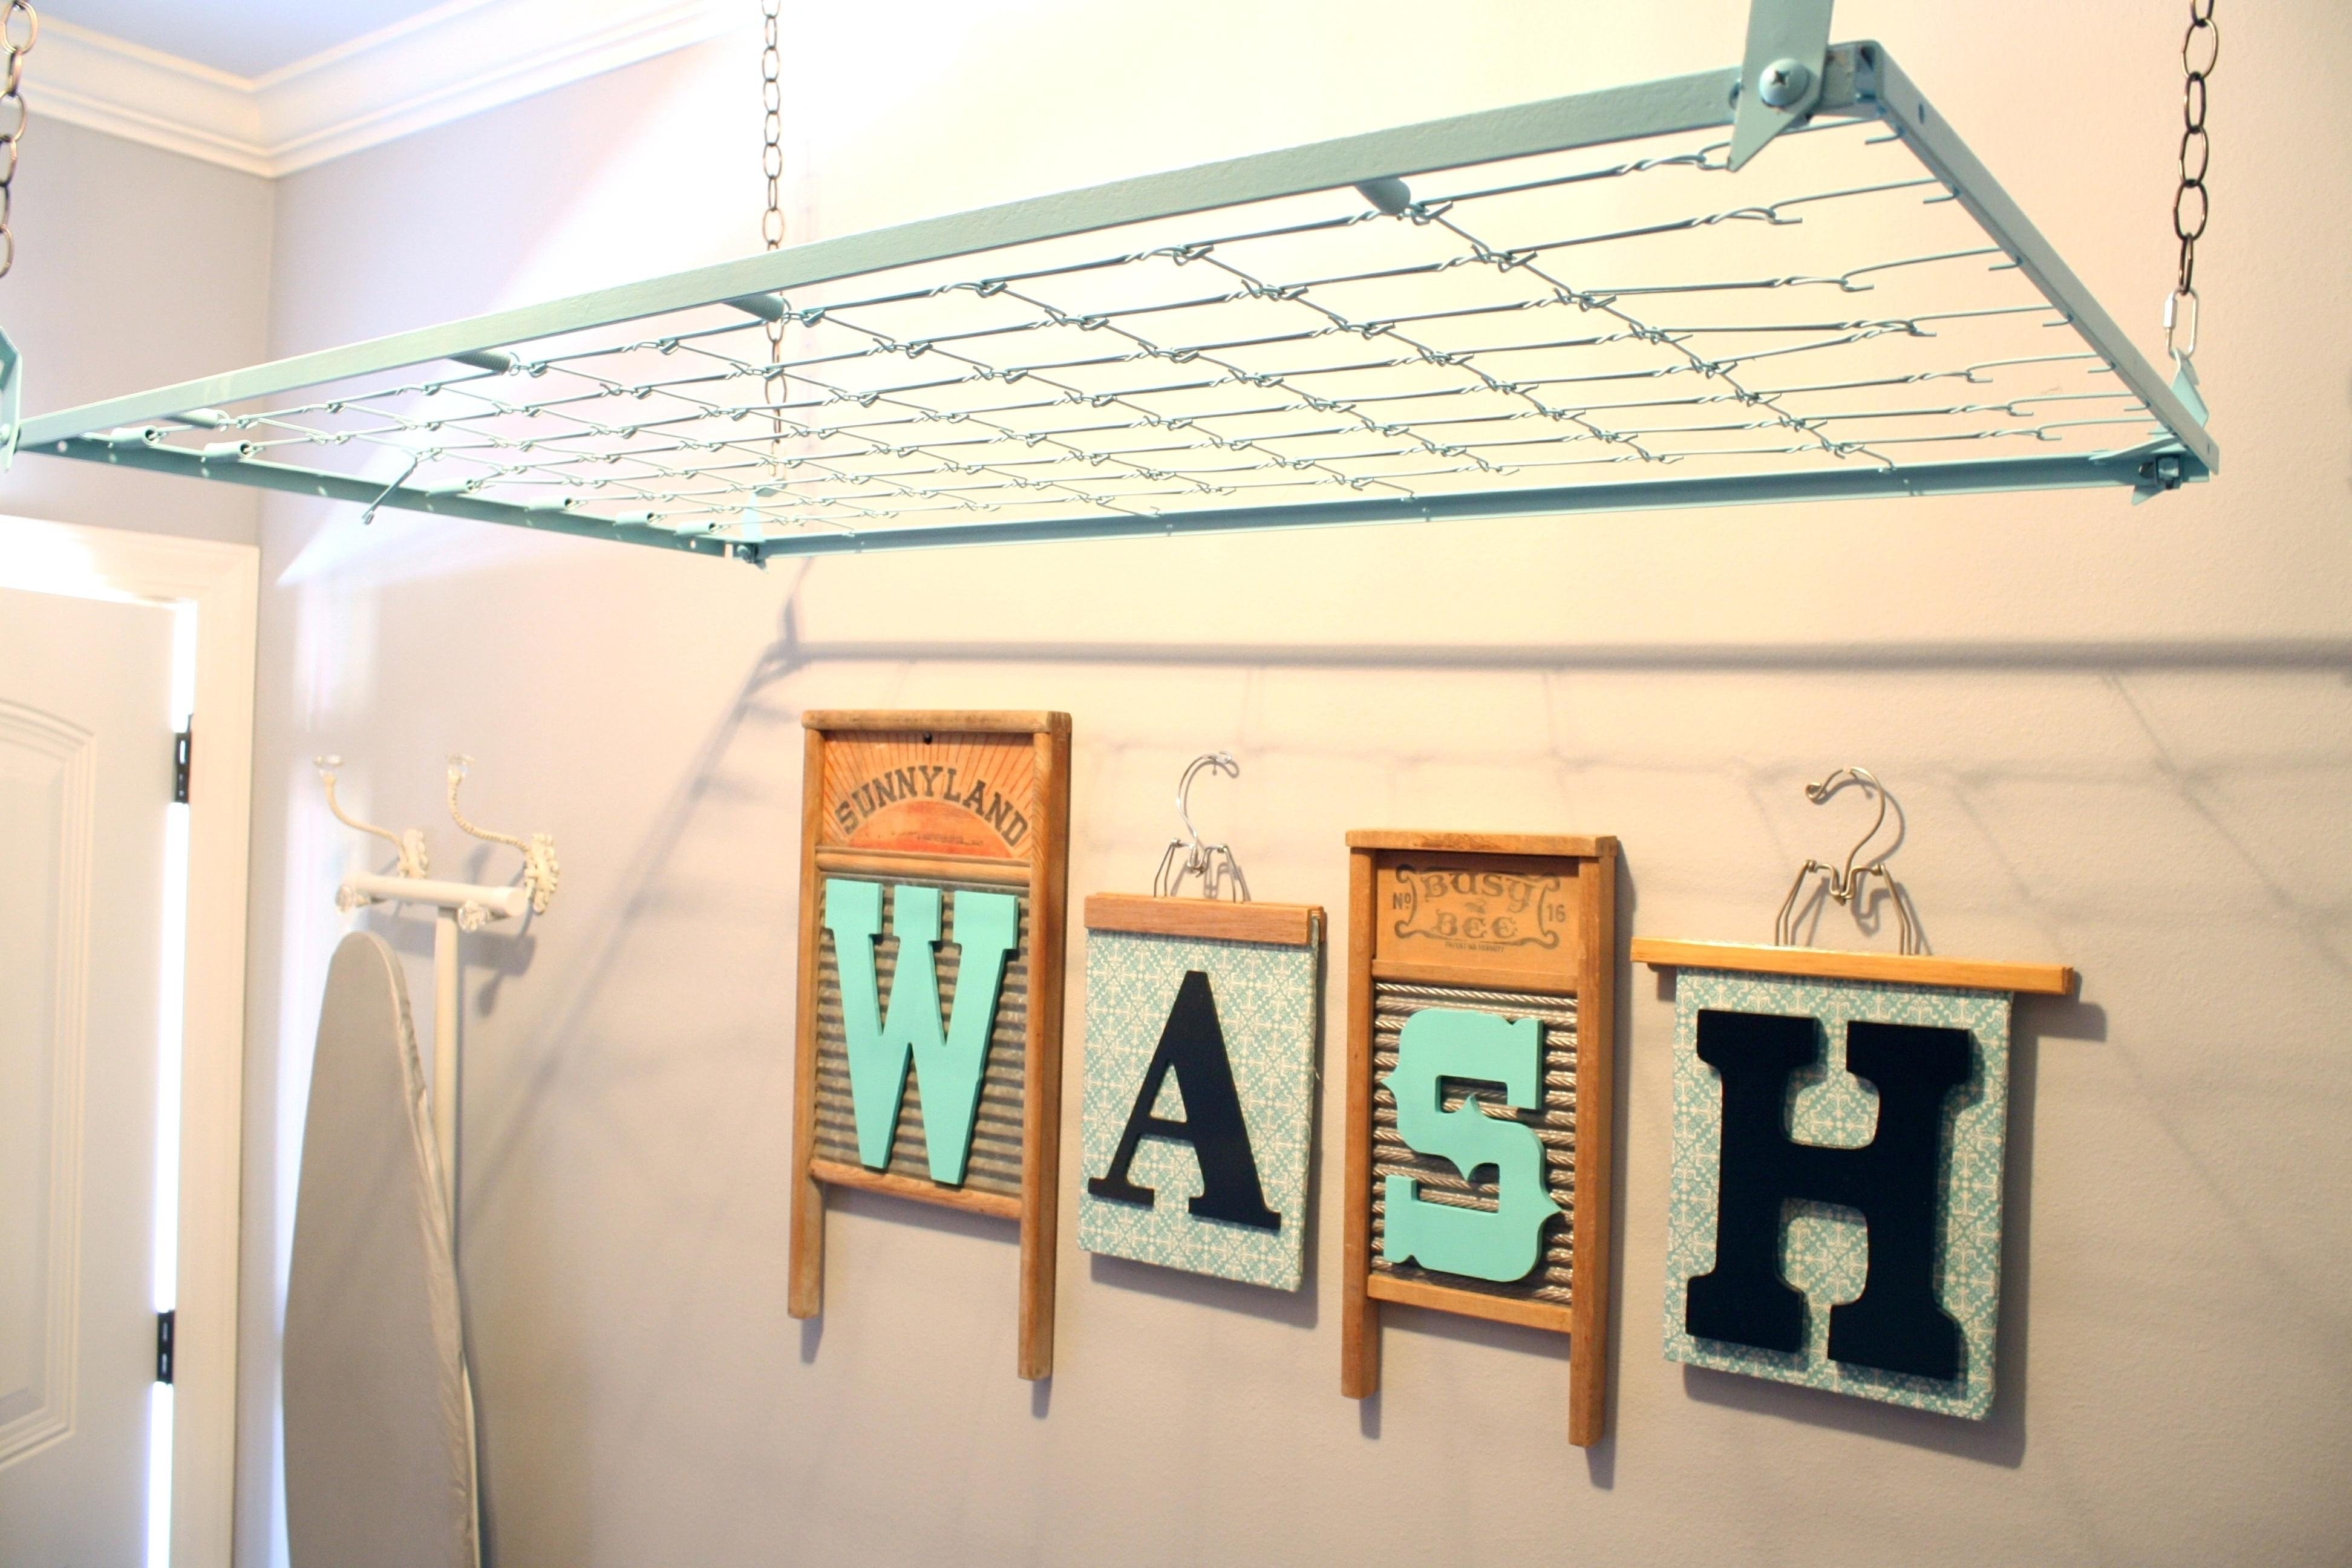 10 Ideal Laundry Room Drying Rack Ideas decoration laundry room hanging rack about clothes drying racks